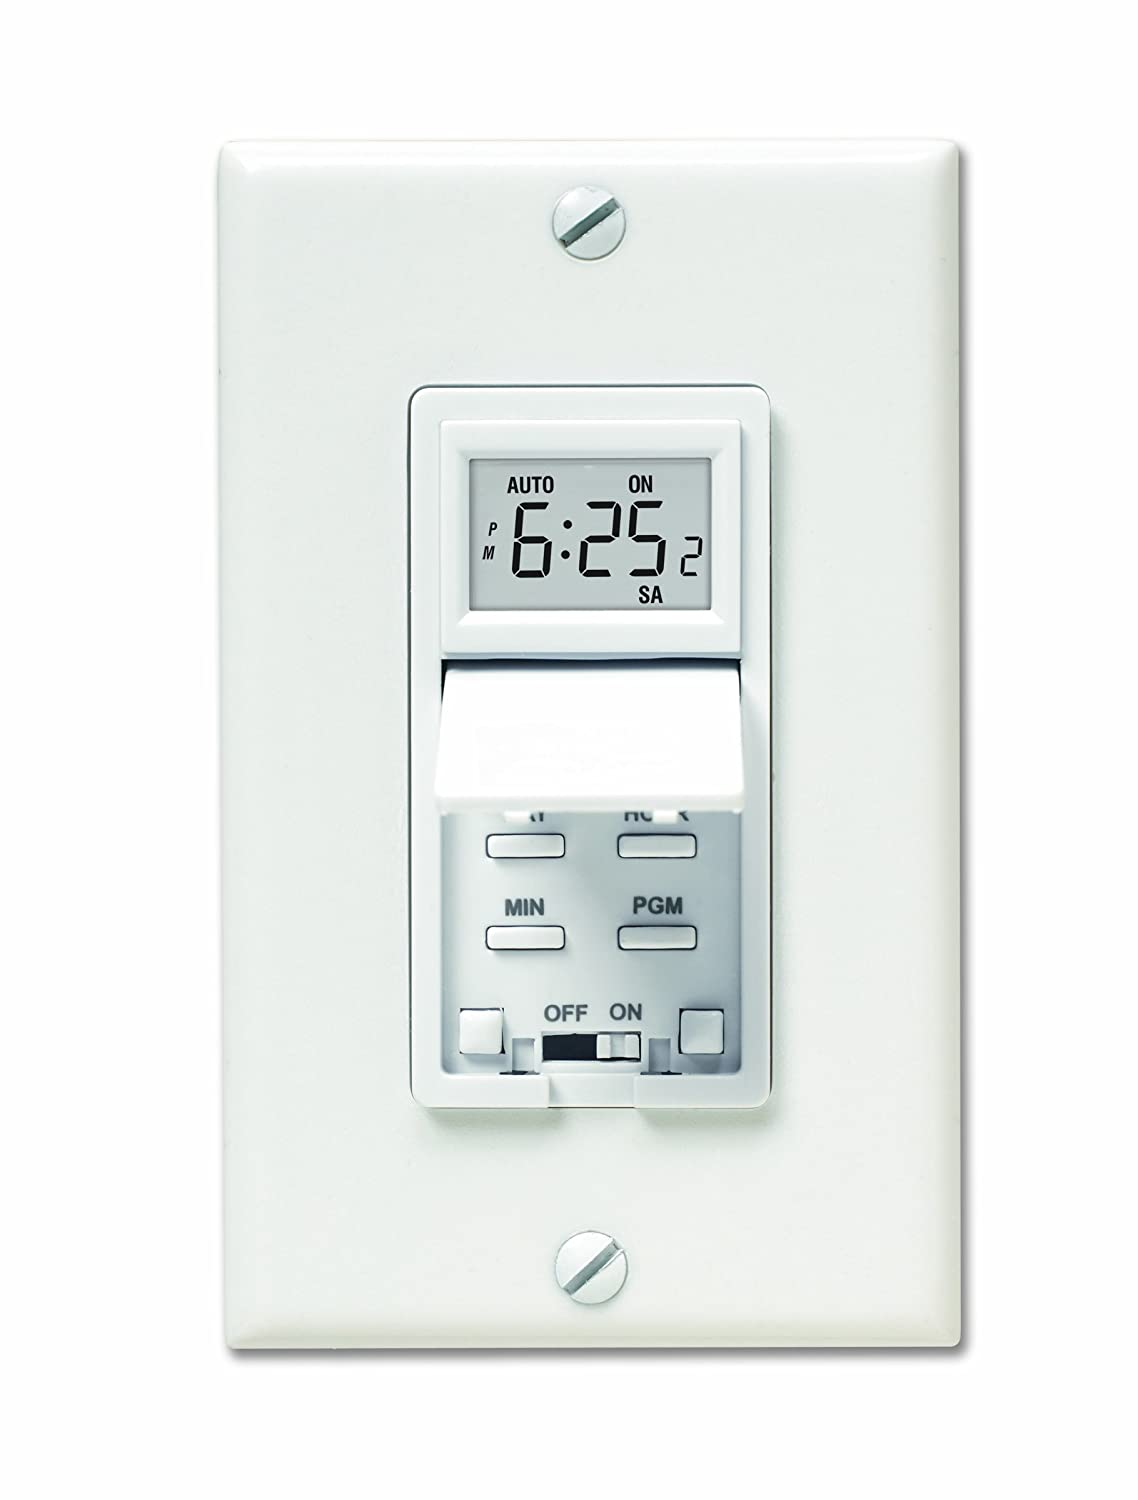 717oiYCarPL._SL1500_ amazon com honeywell rpls530a 7 day programmable timer switch Appliance Switch Honeywell at panicattacktreatment.co